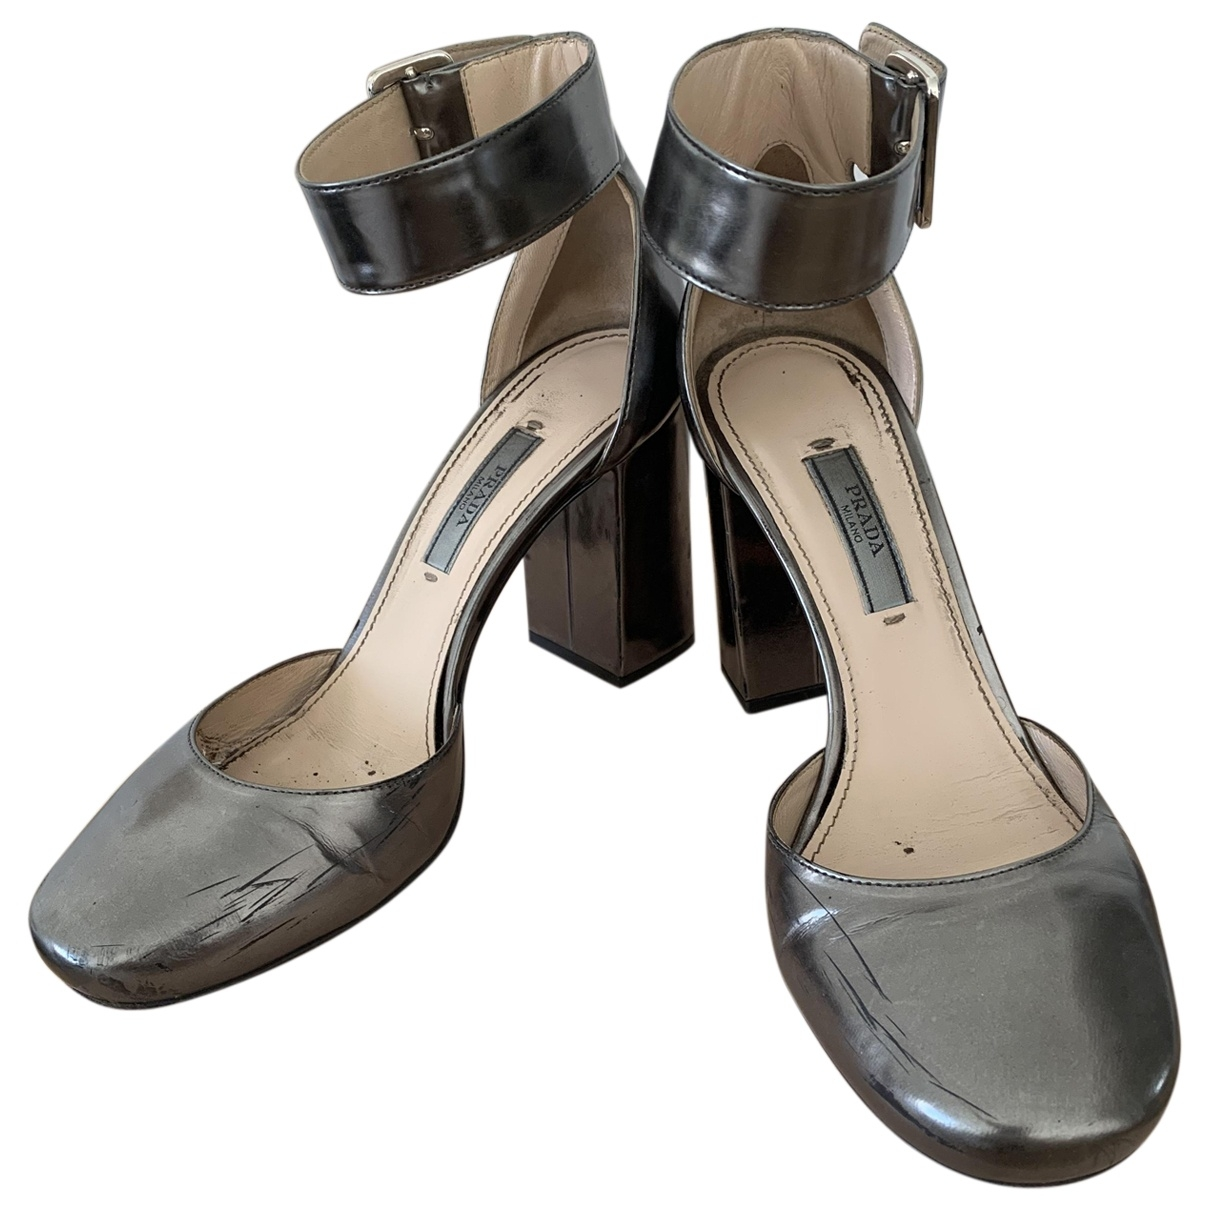 Prada \N Silver Patent leather Heels for Women 37 EU